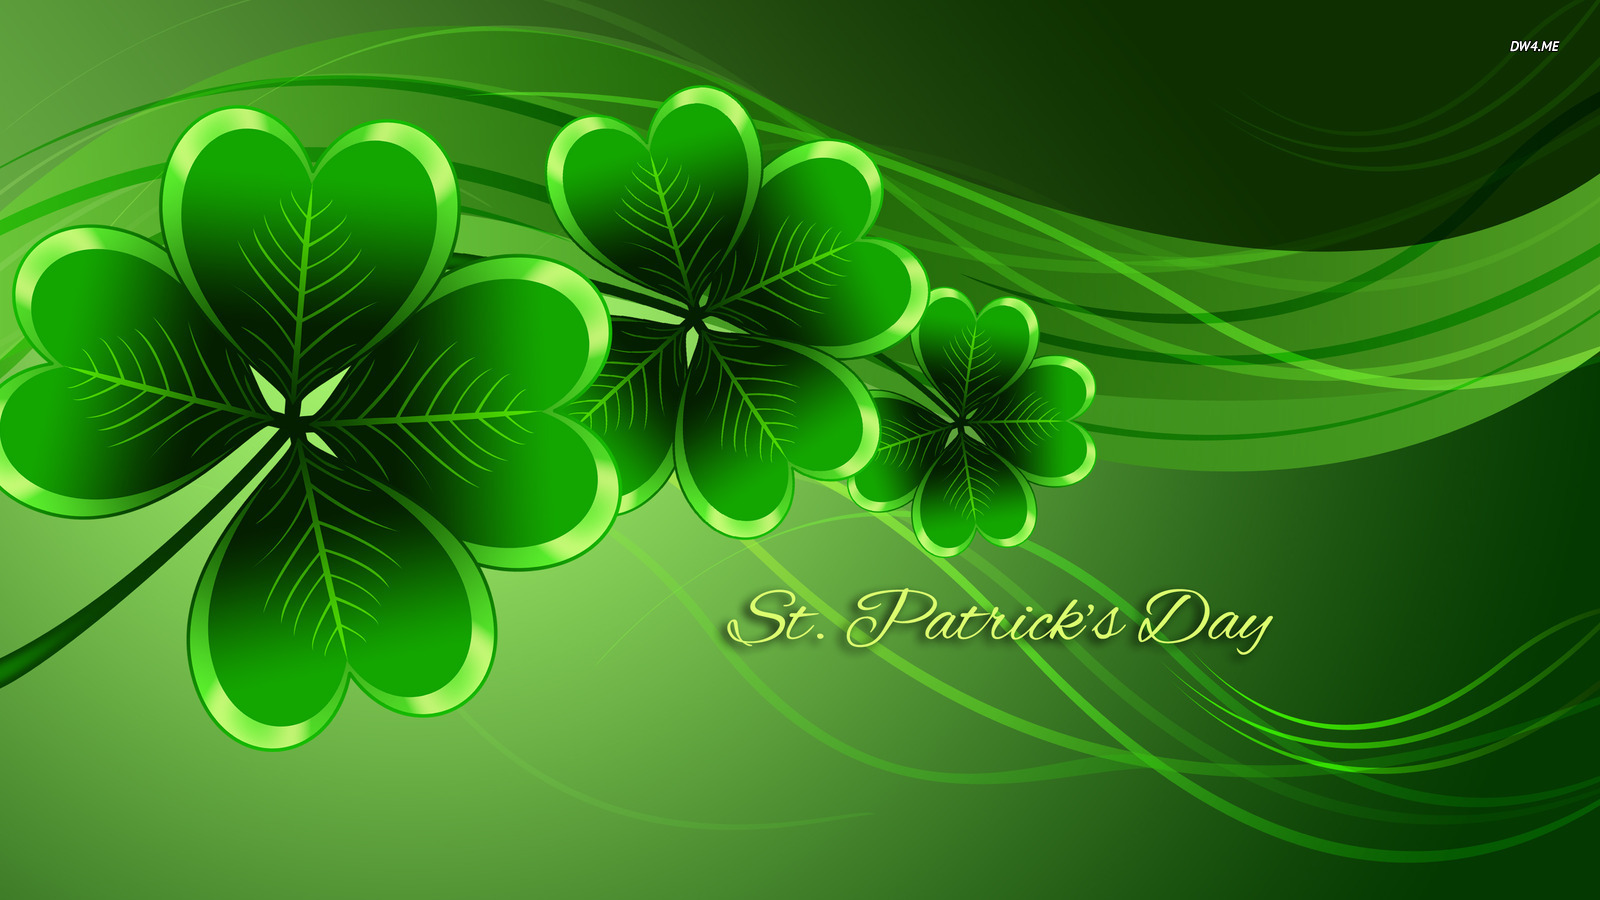 Saint Patricks Day wallpaper 1600x900